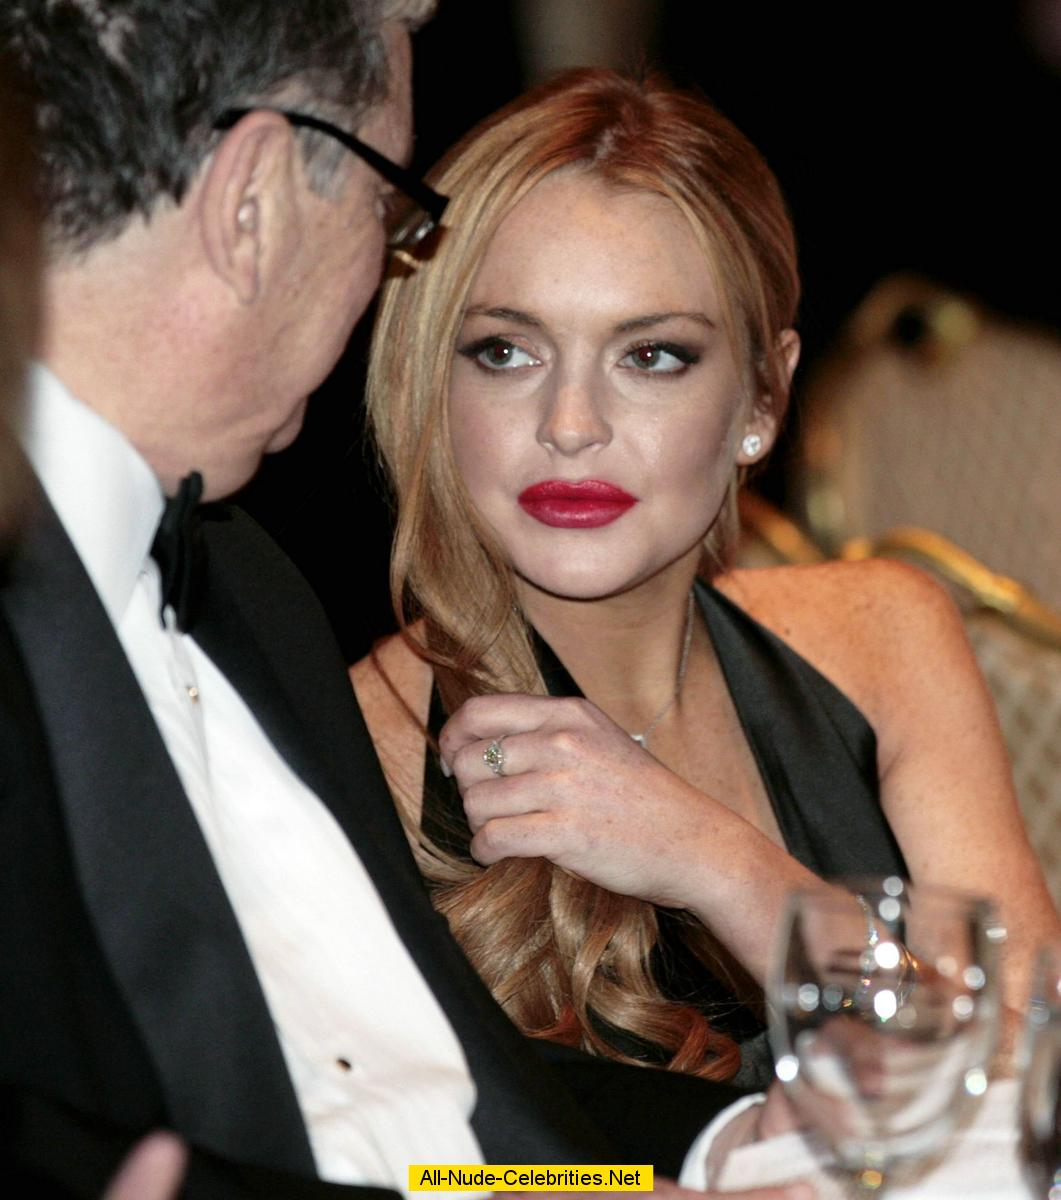 who is lindsay lohan dating now 2015